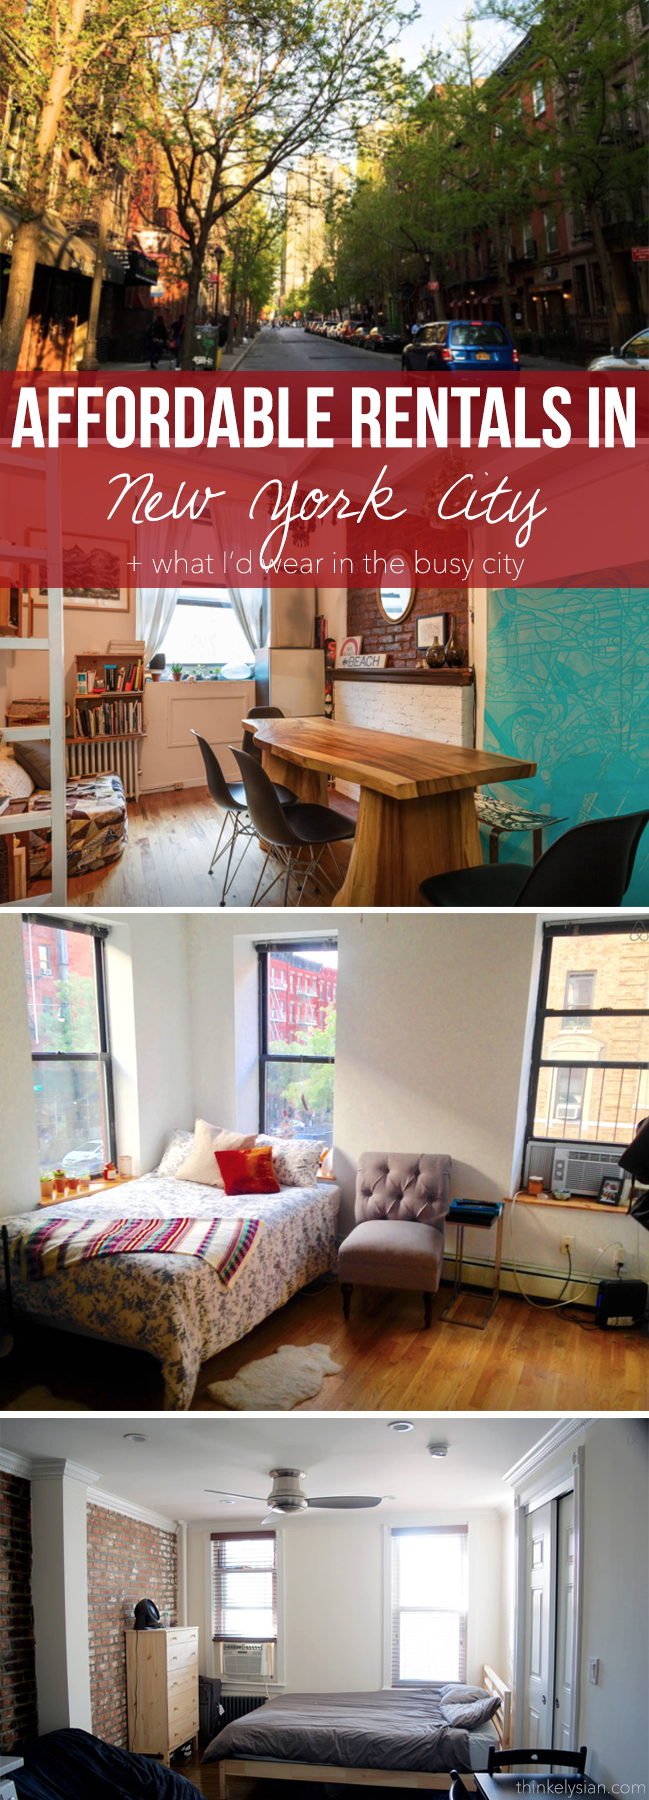 Affordable Rentals in New York City + What I'd Wear! // thinkelysian.com